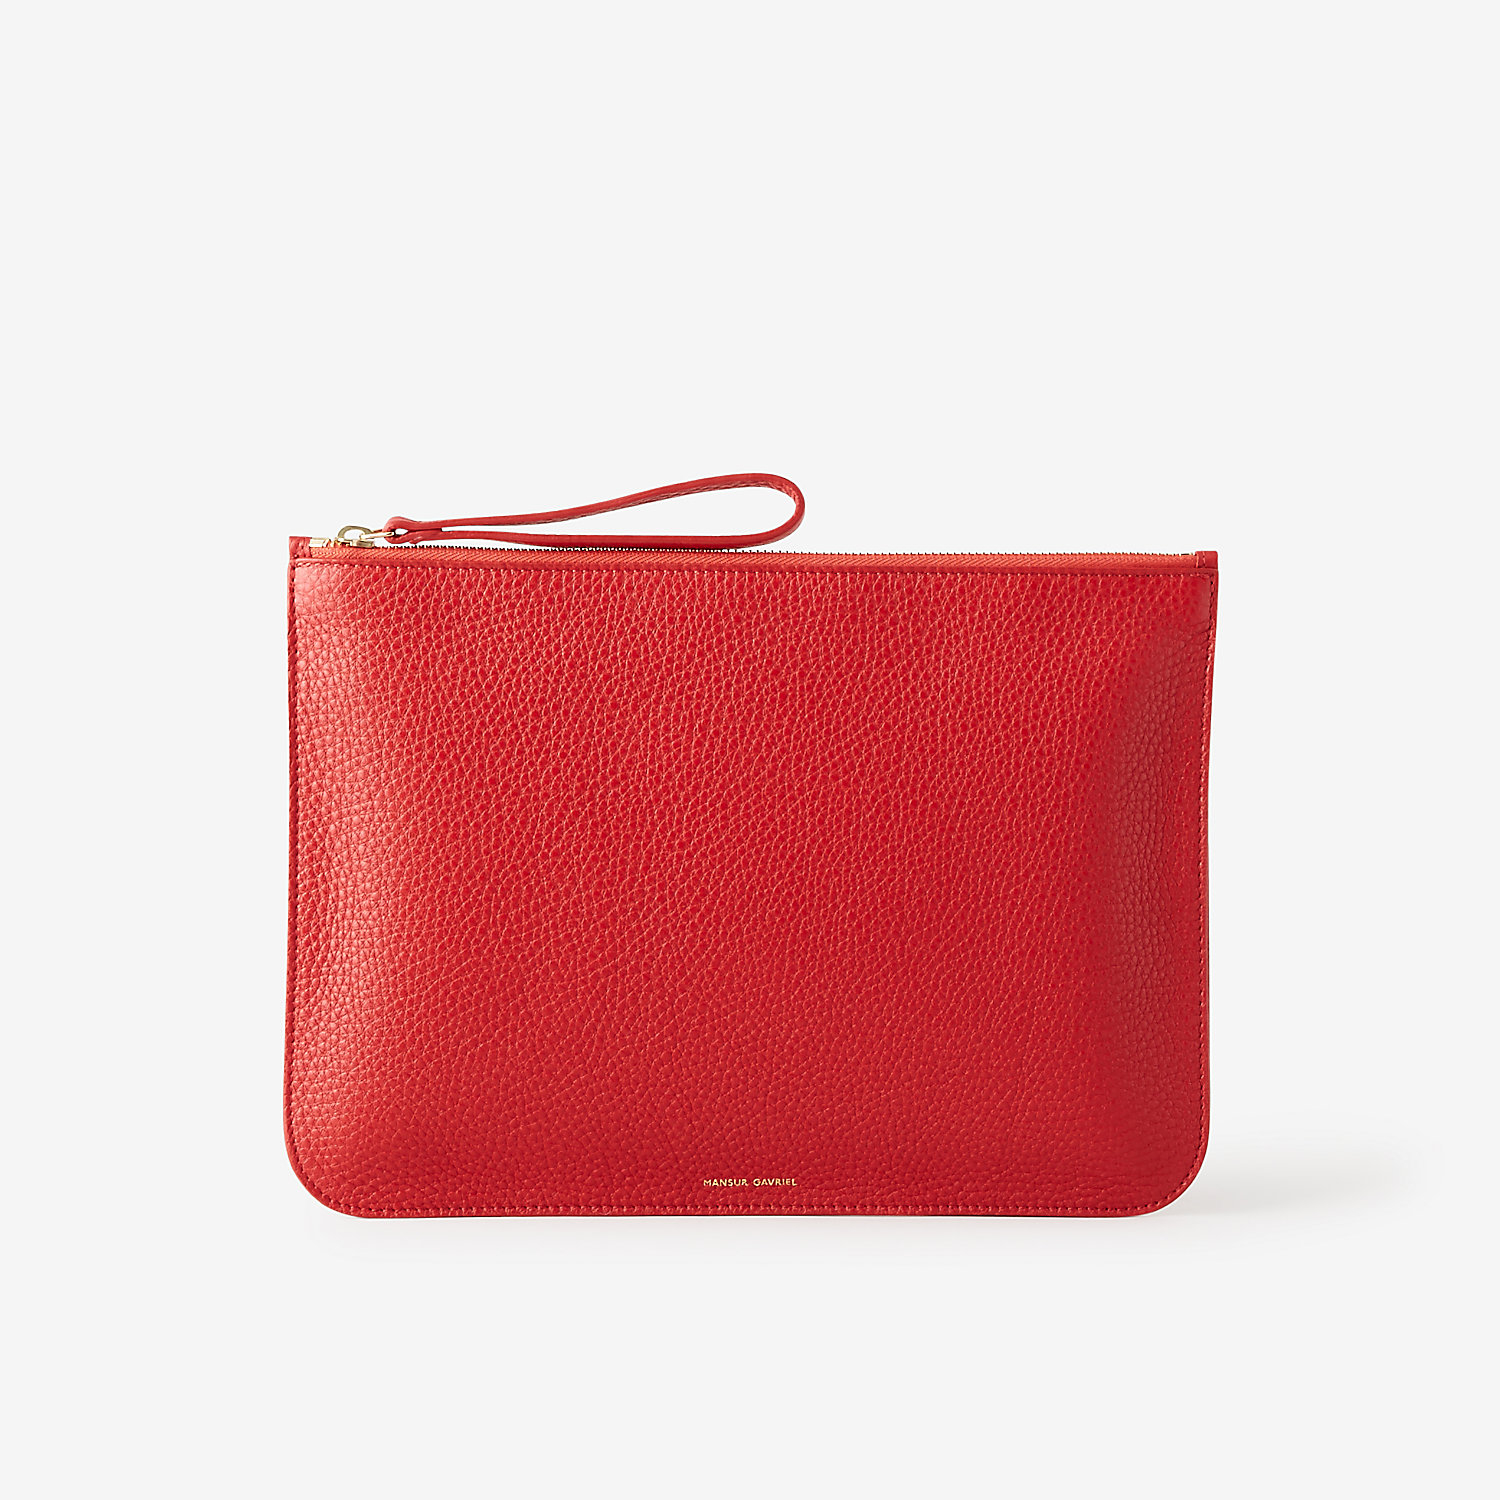 Mansur gavriel Large Tumbled Leather Wallet in Red (FLAMMA ...